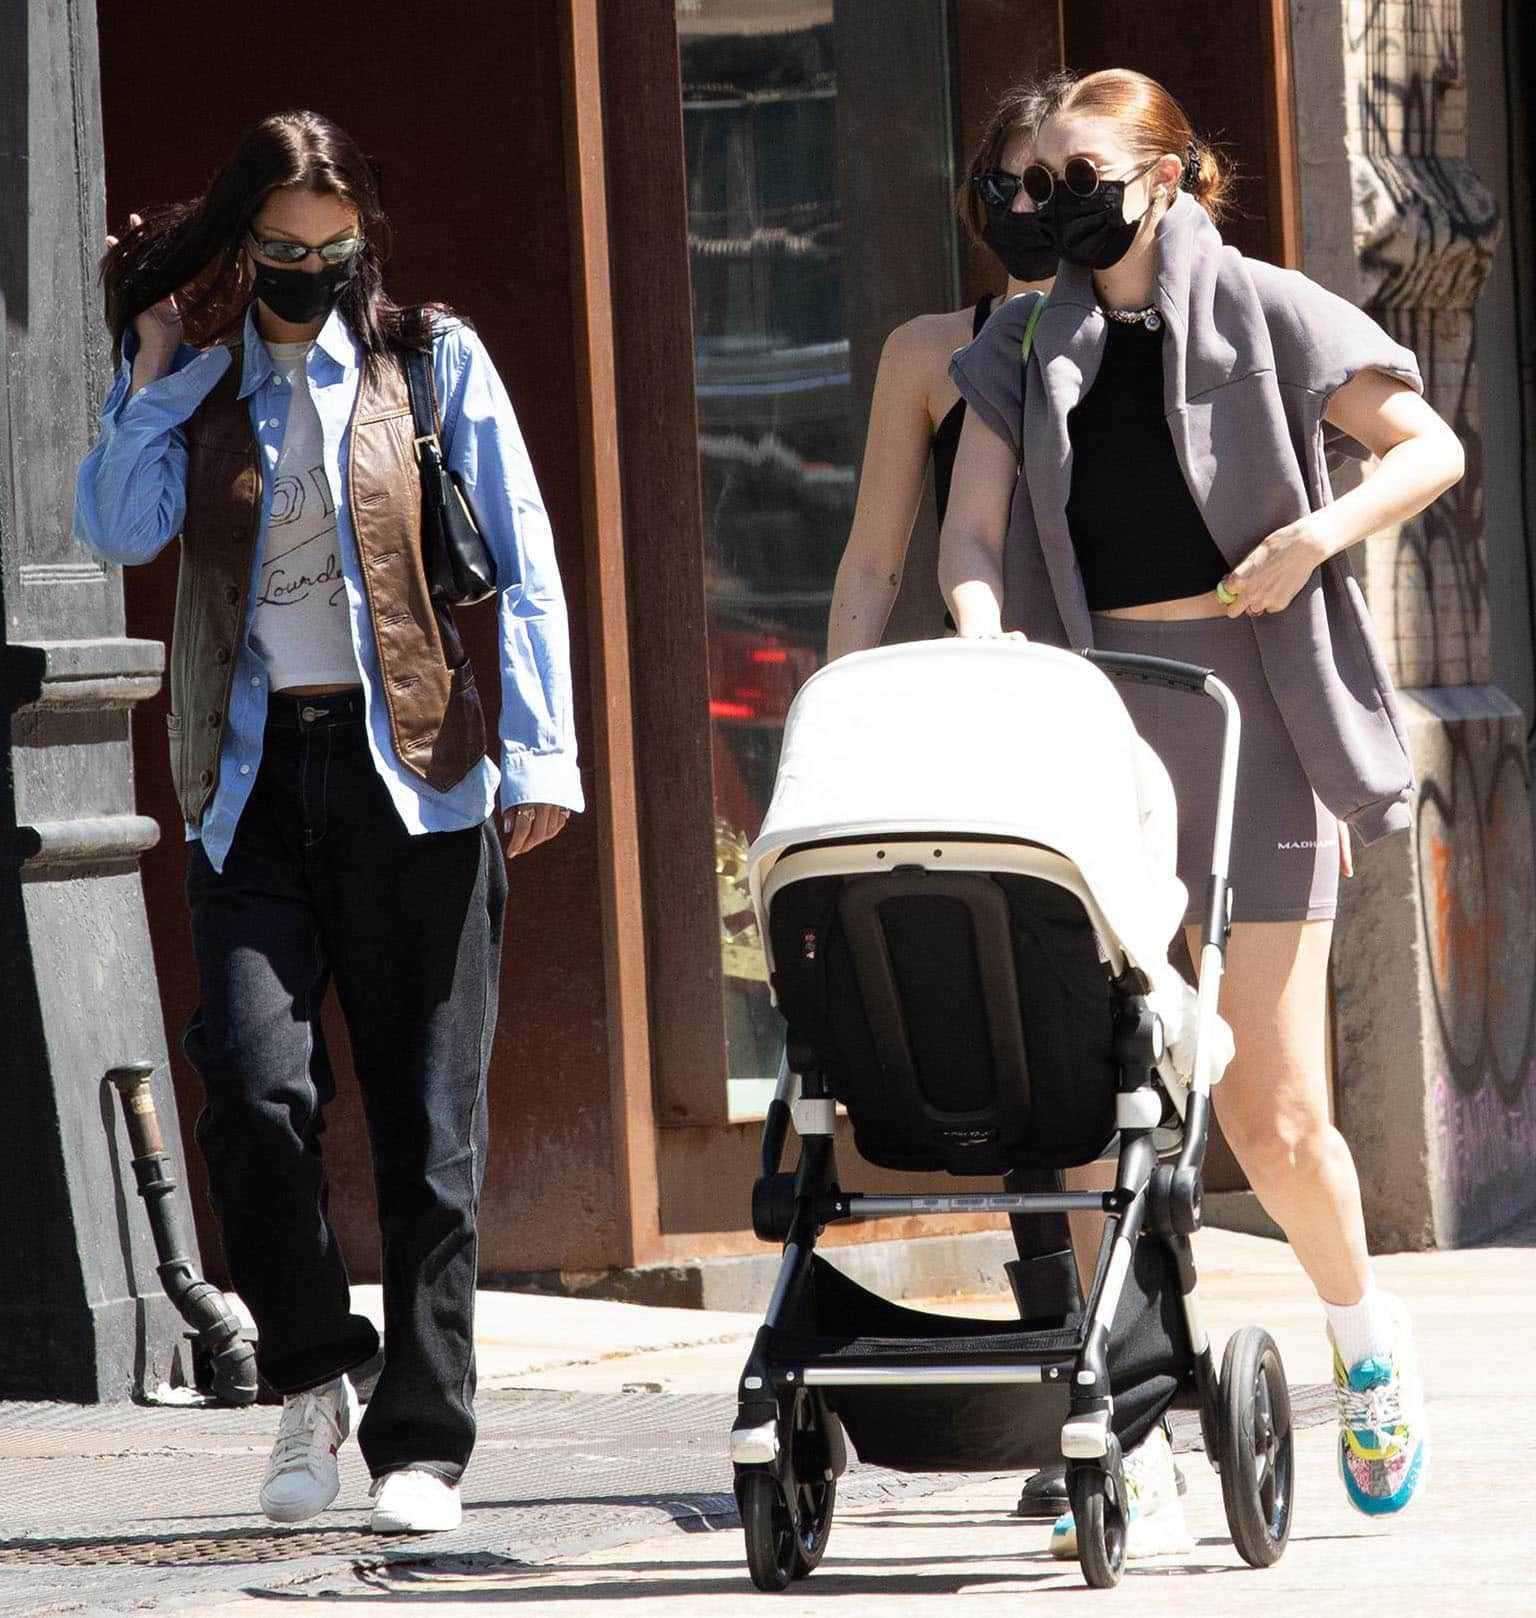 Gigi Hadid and Bella Hadid take baby Khai out in New York City on April 8, 2021